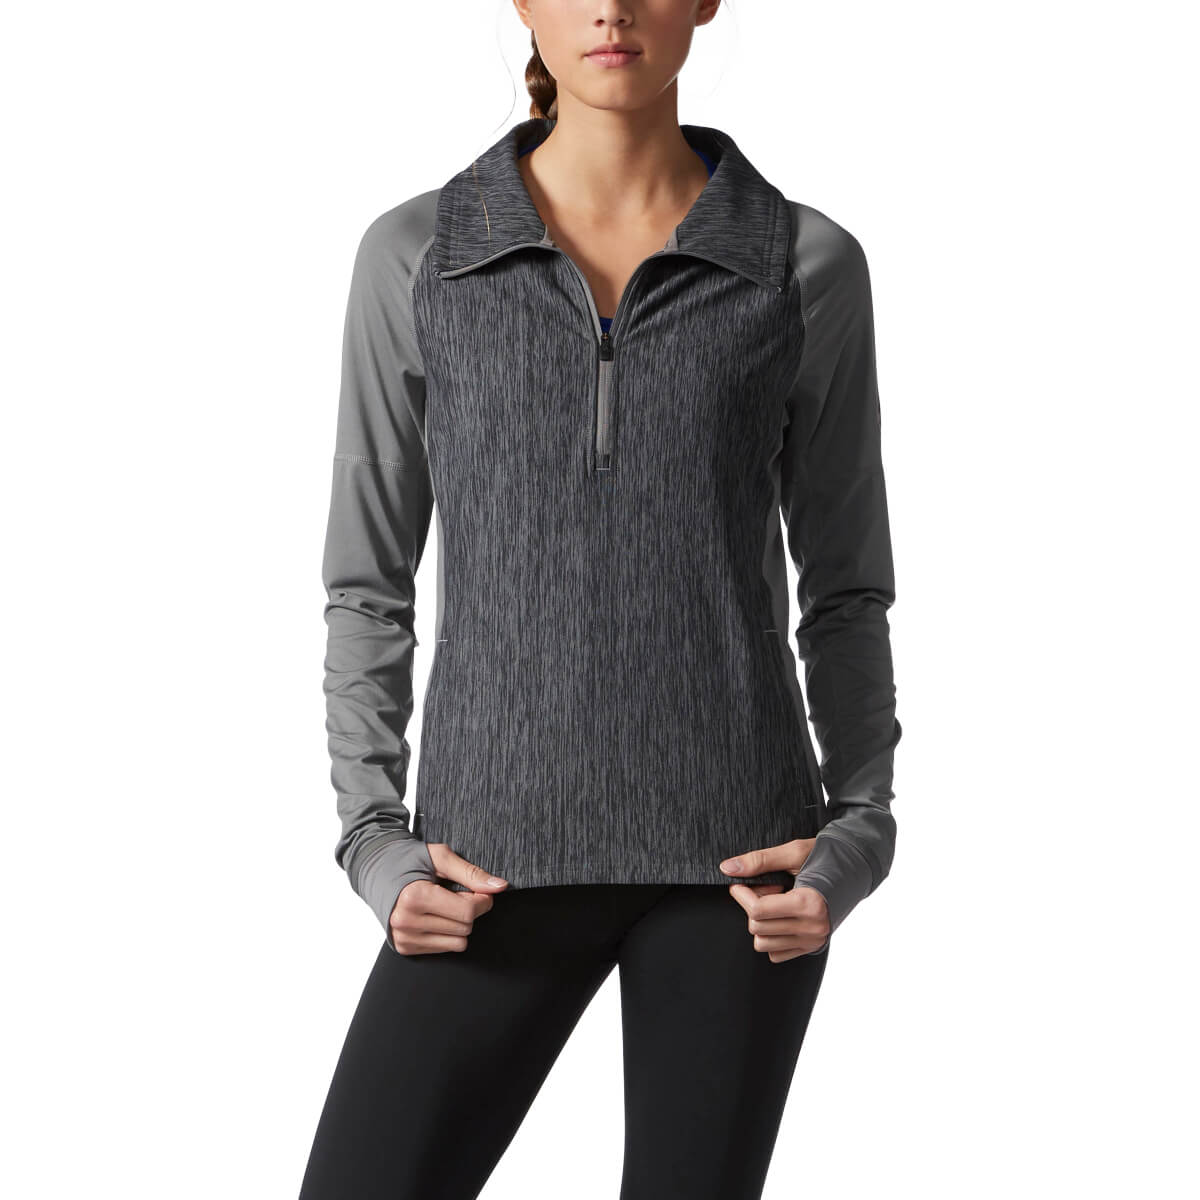 Adidas Women's Performer Baseline 1/4-Zip Pullover